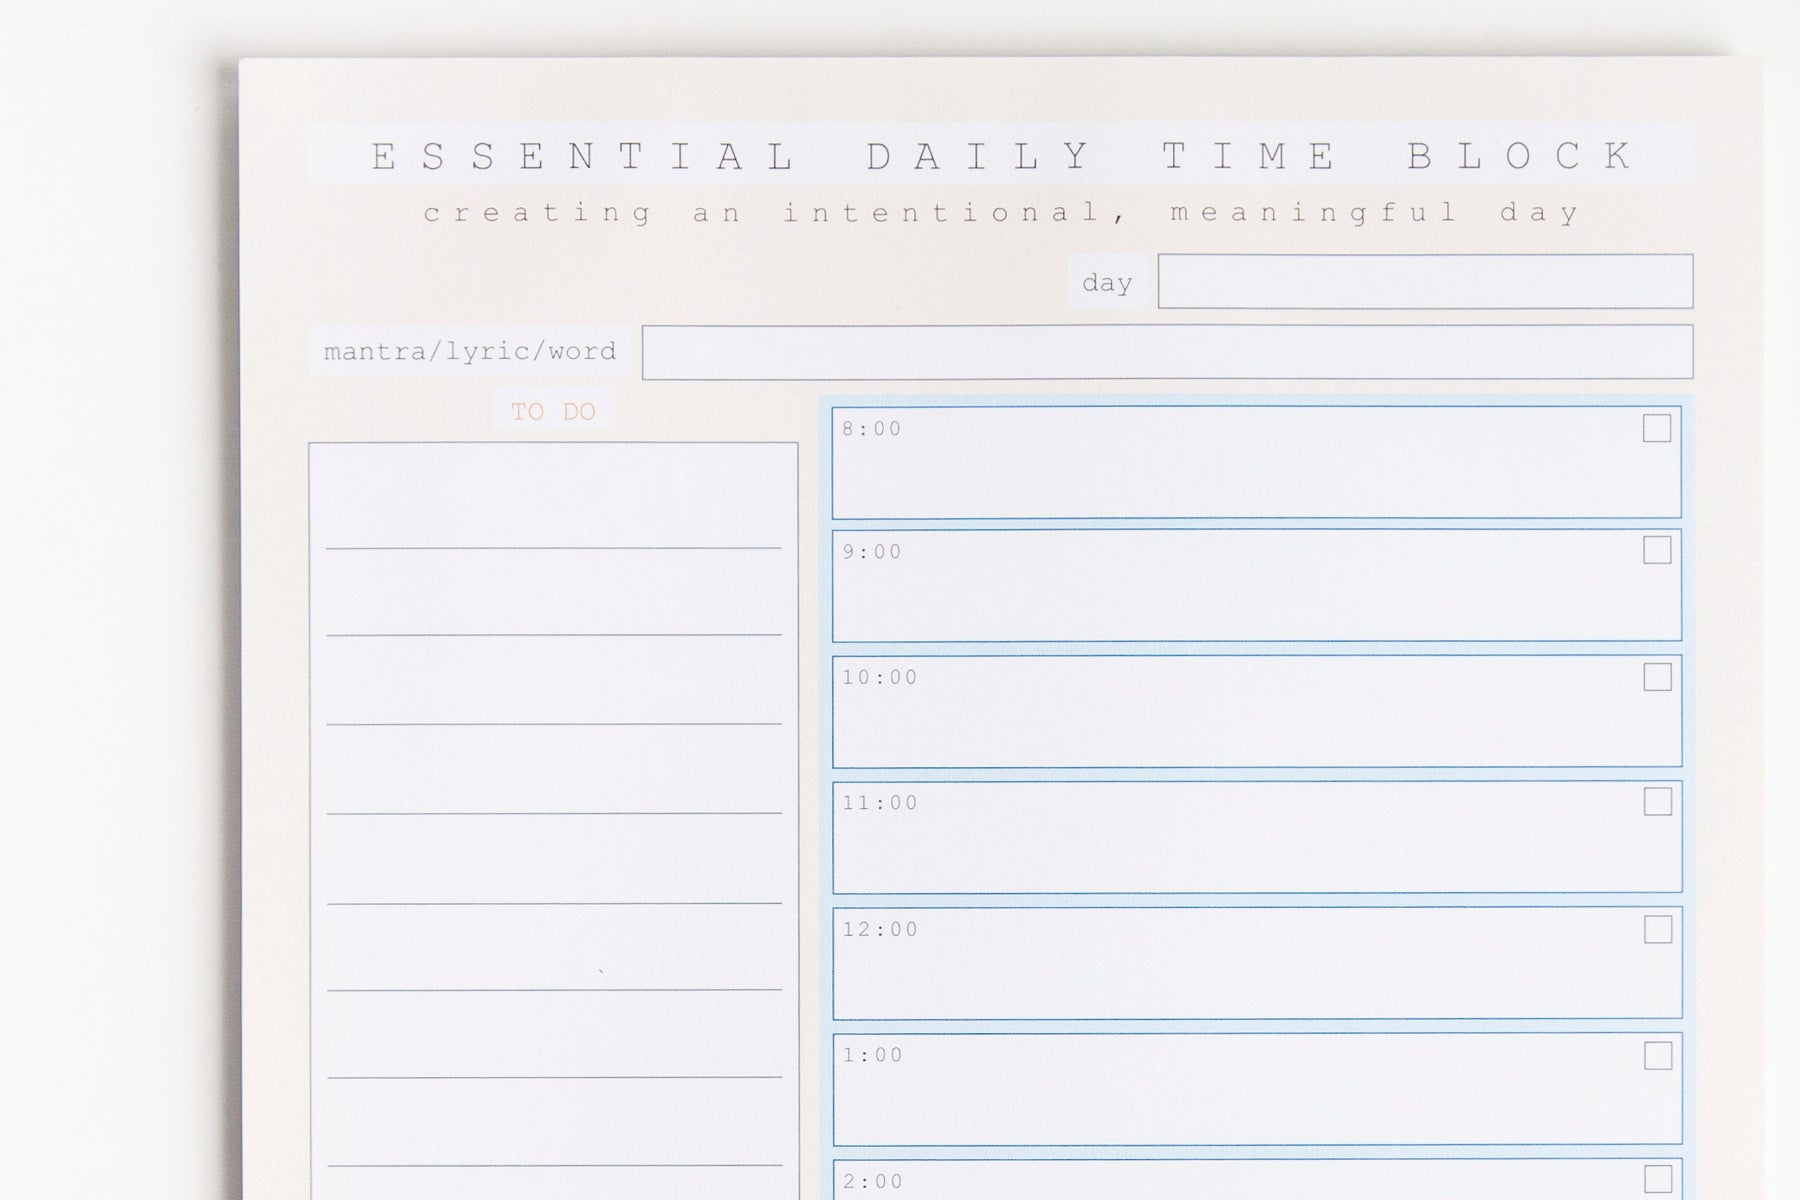 Essential Daily Time Block (Notepad)